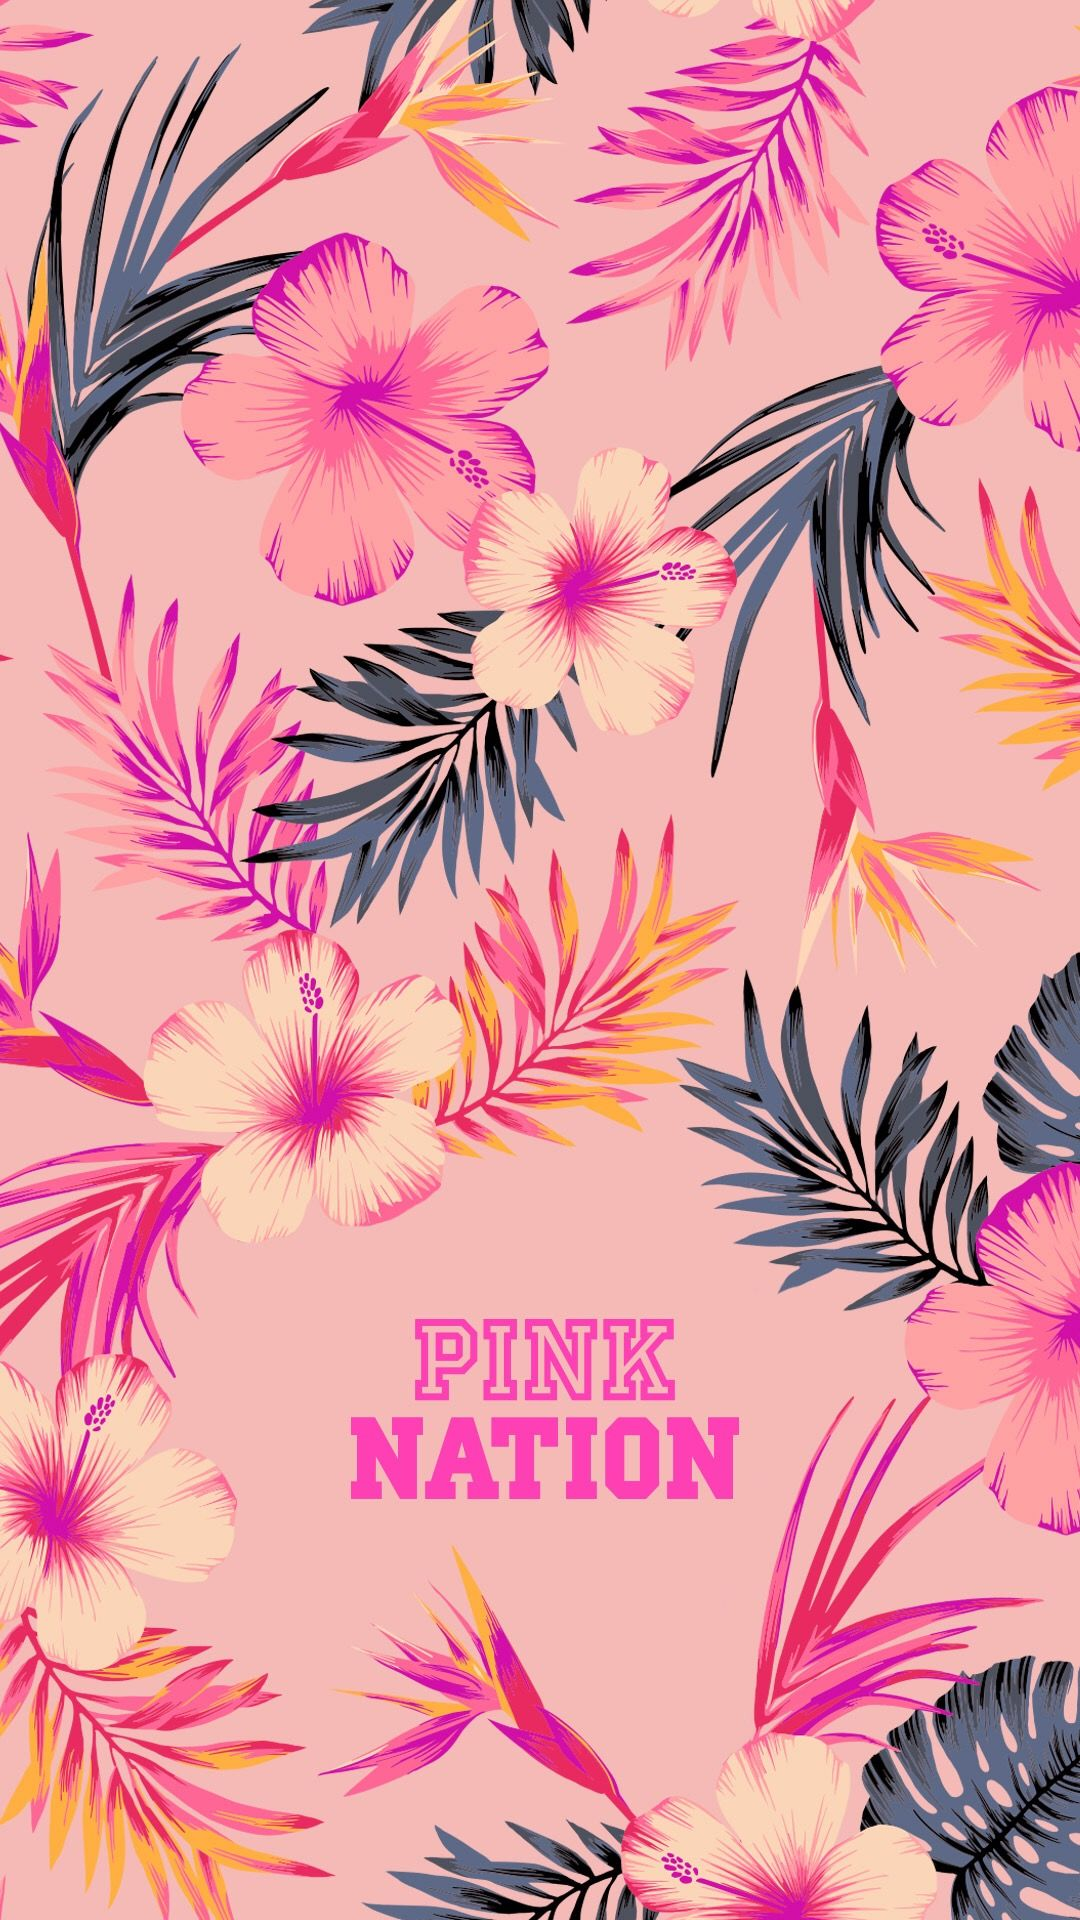 Pink Nation Wallpaper lexxyjean Pink wallpaper iphone